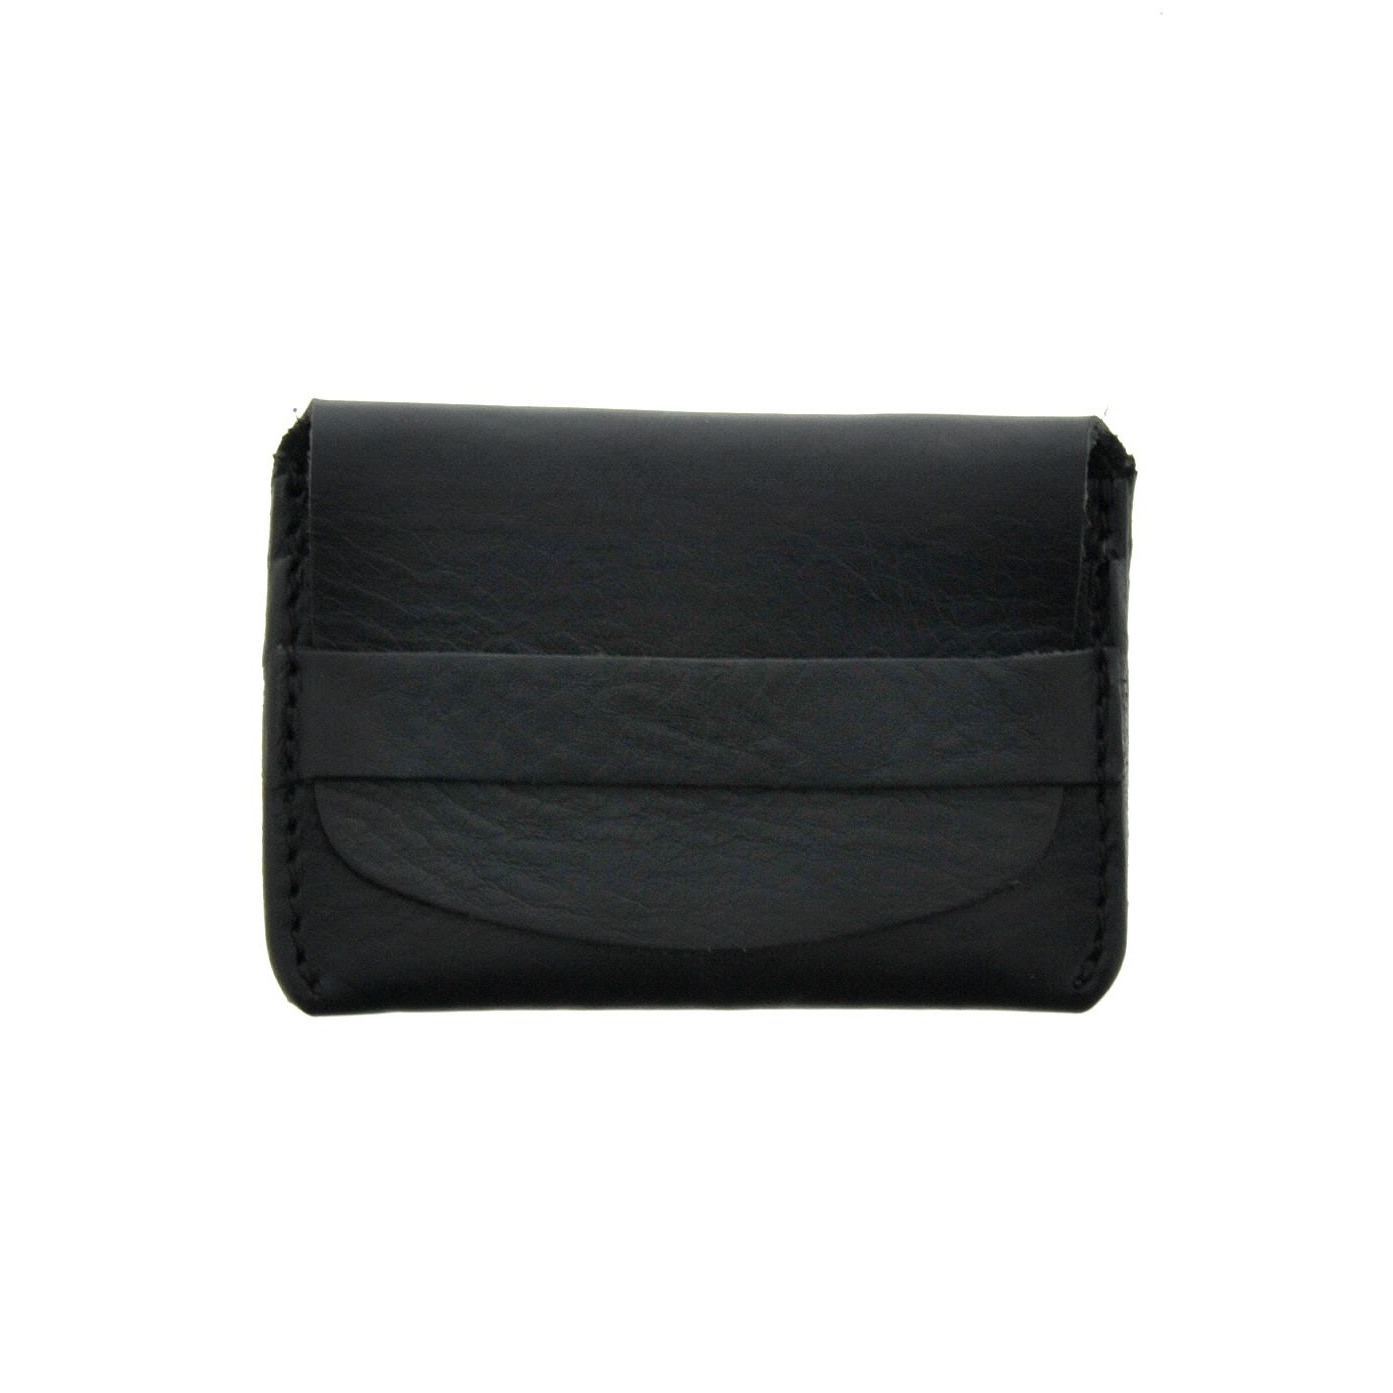 Leather Card Holder - Black - LeatherLately